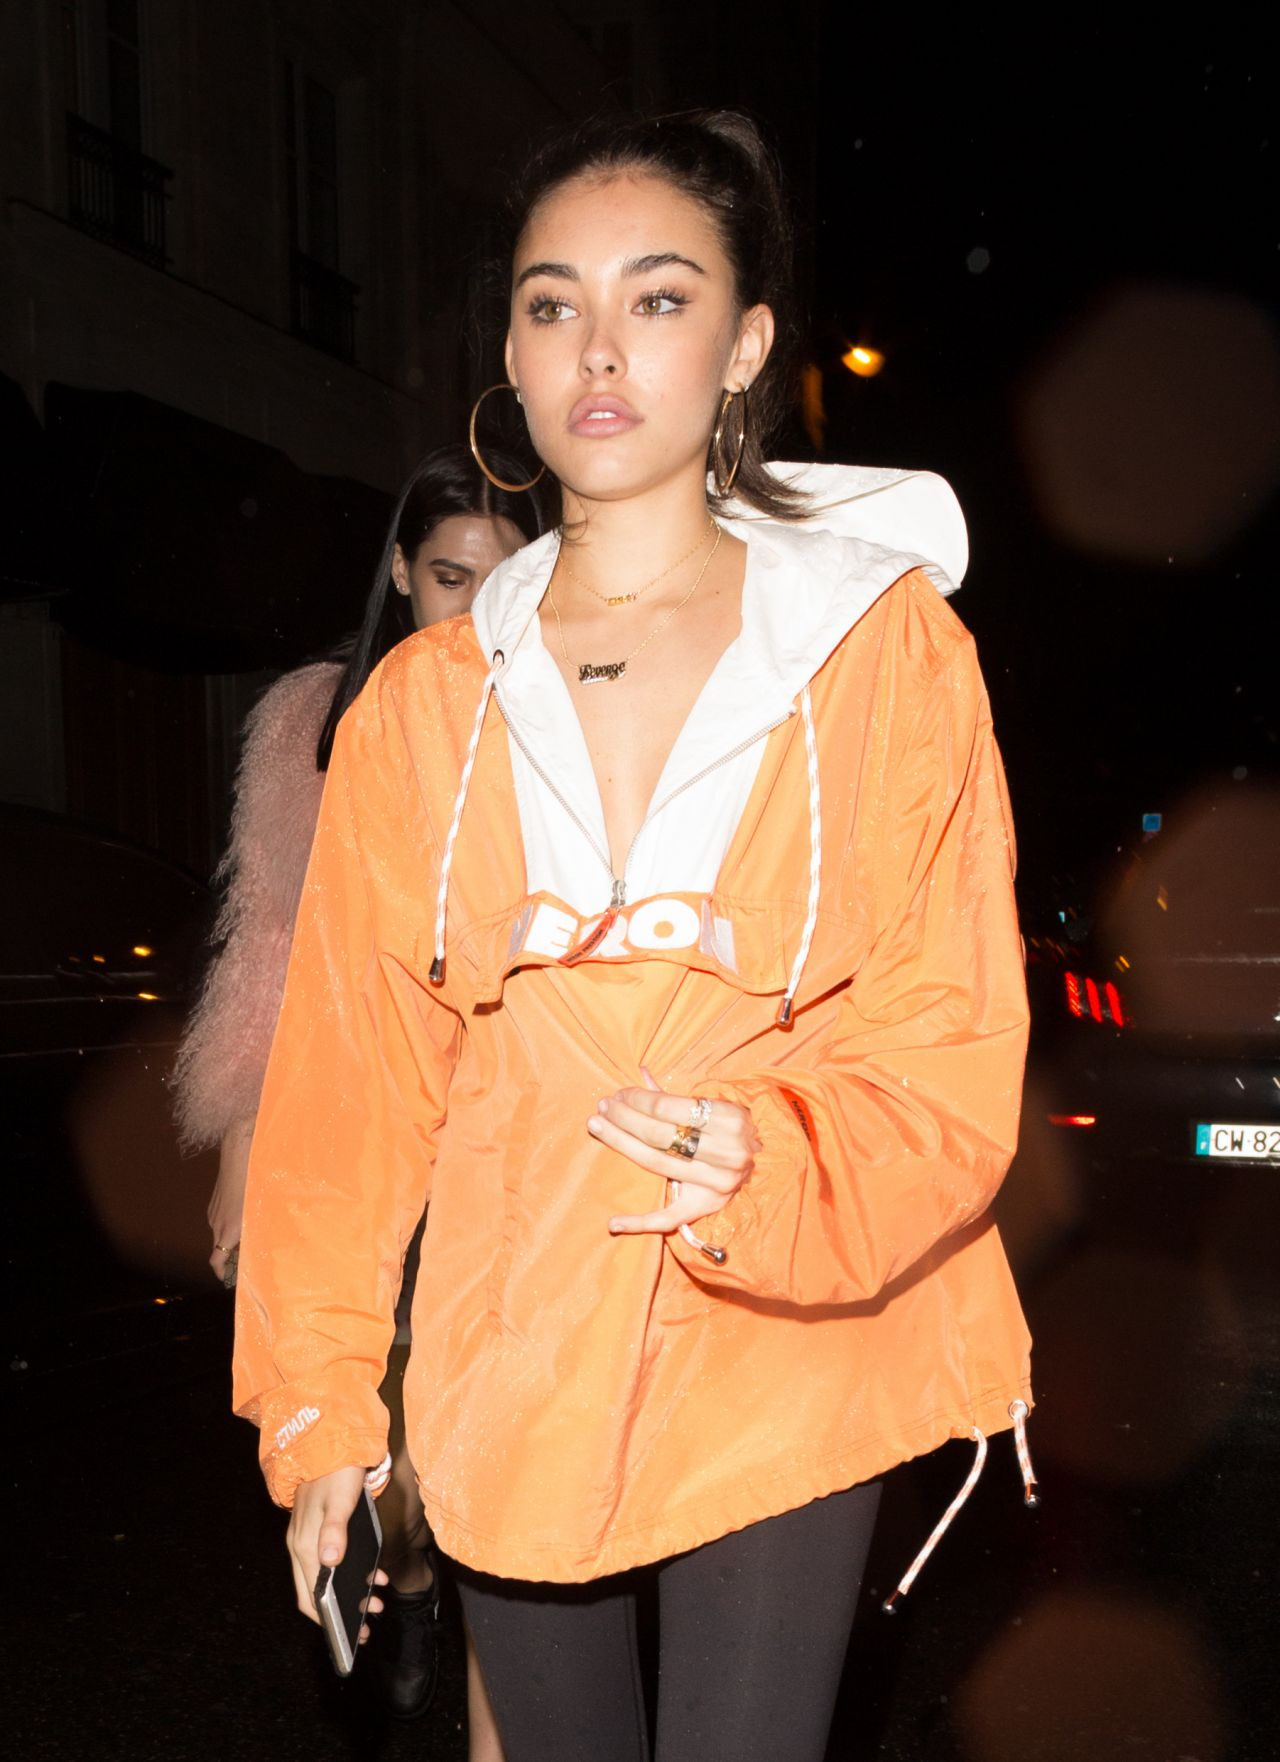 Madison beer night out paris france